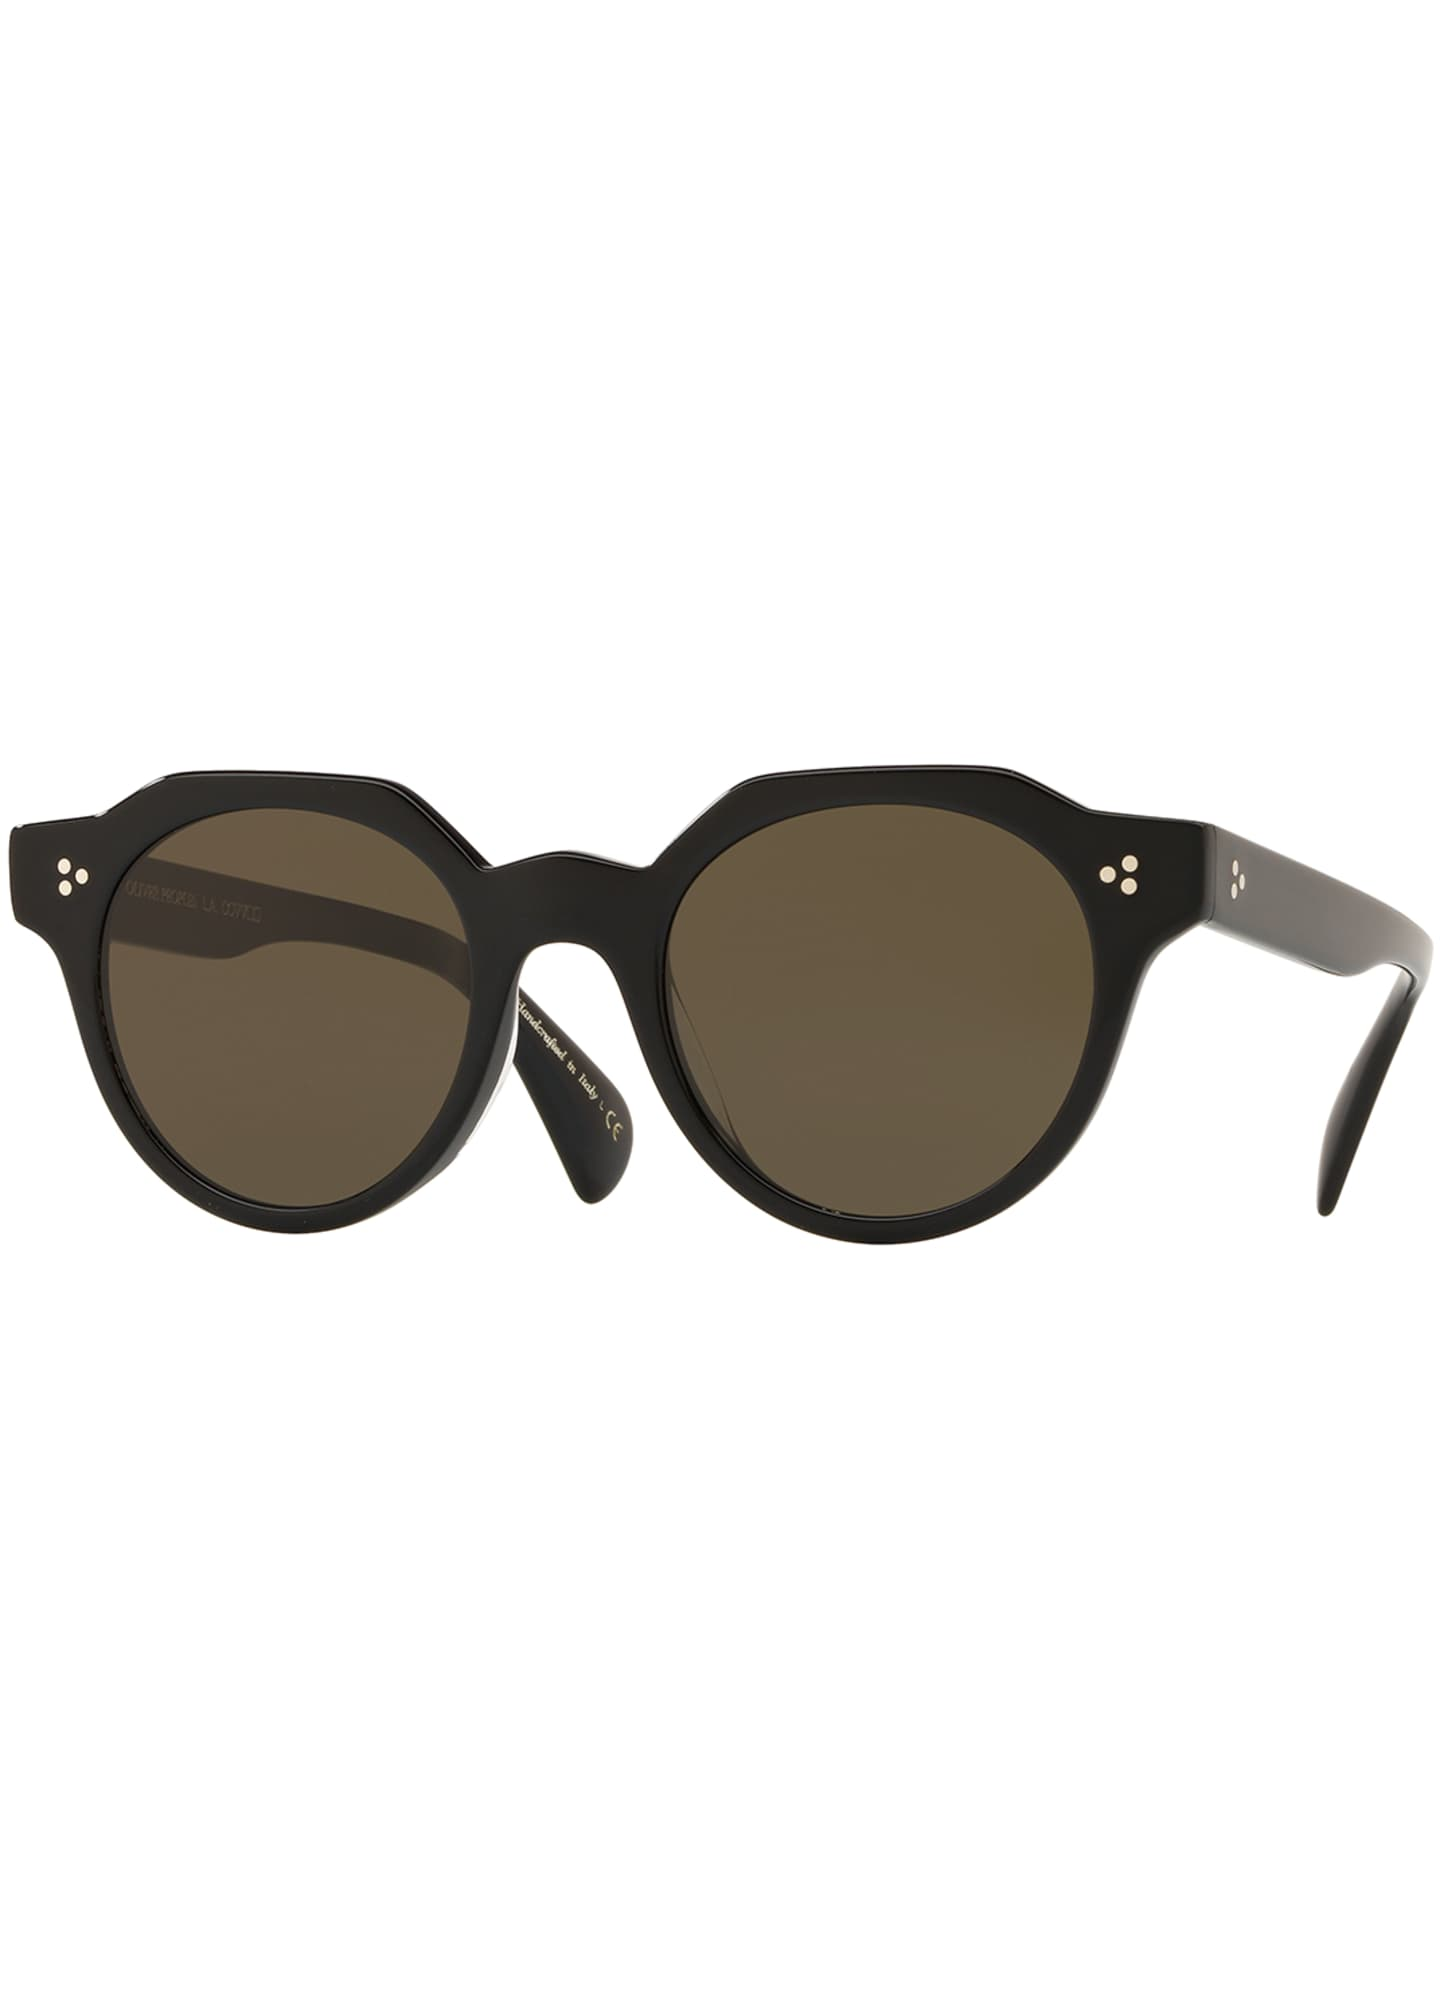 Image 1 of 2: Irven Faceted Round Acetate Sunglasses